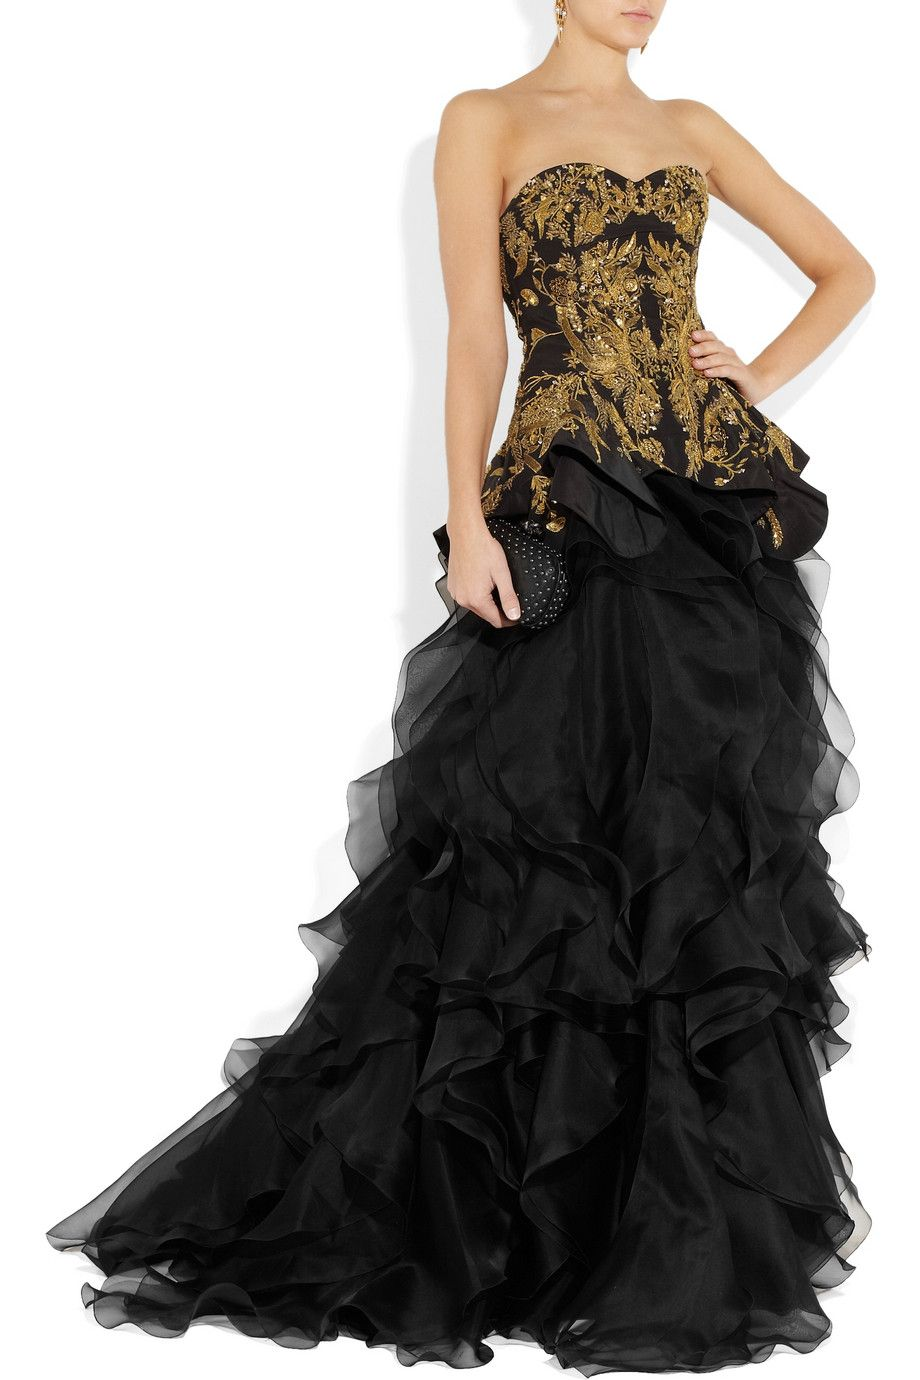 for jsut 30,000 i can i have BOOtiful dress! ;)  how i do love me some Alexander mcqueen